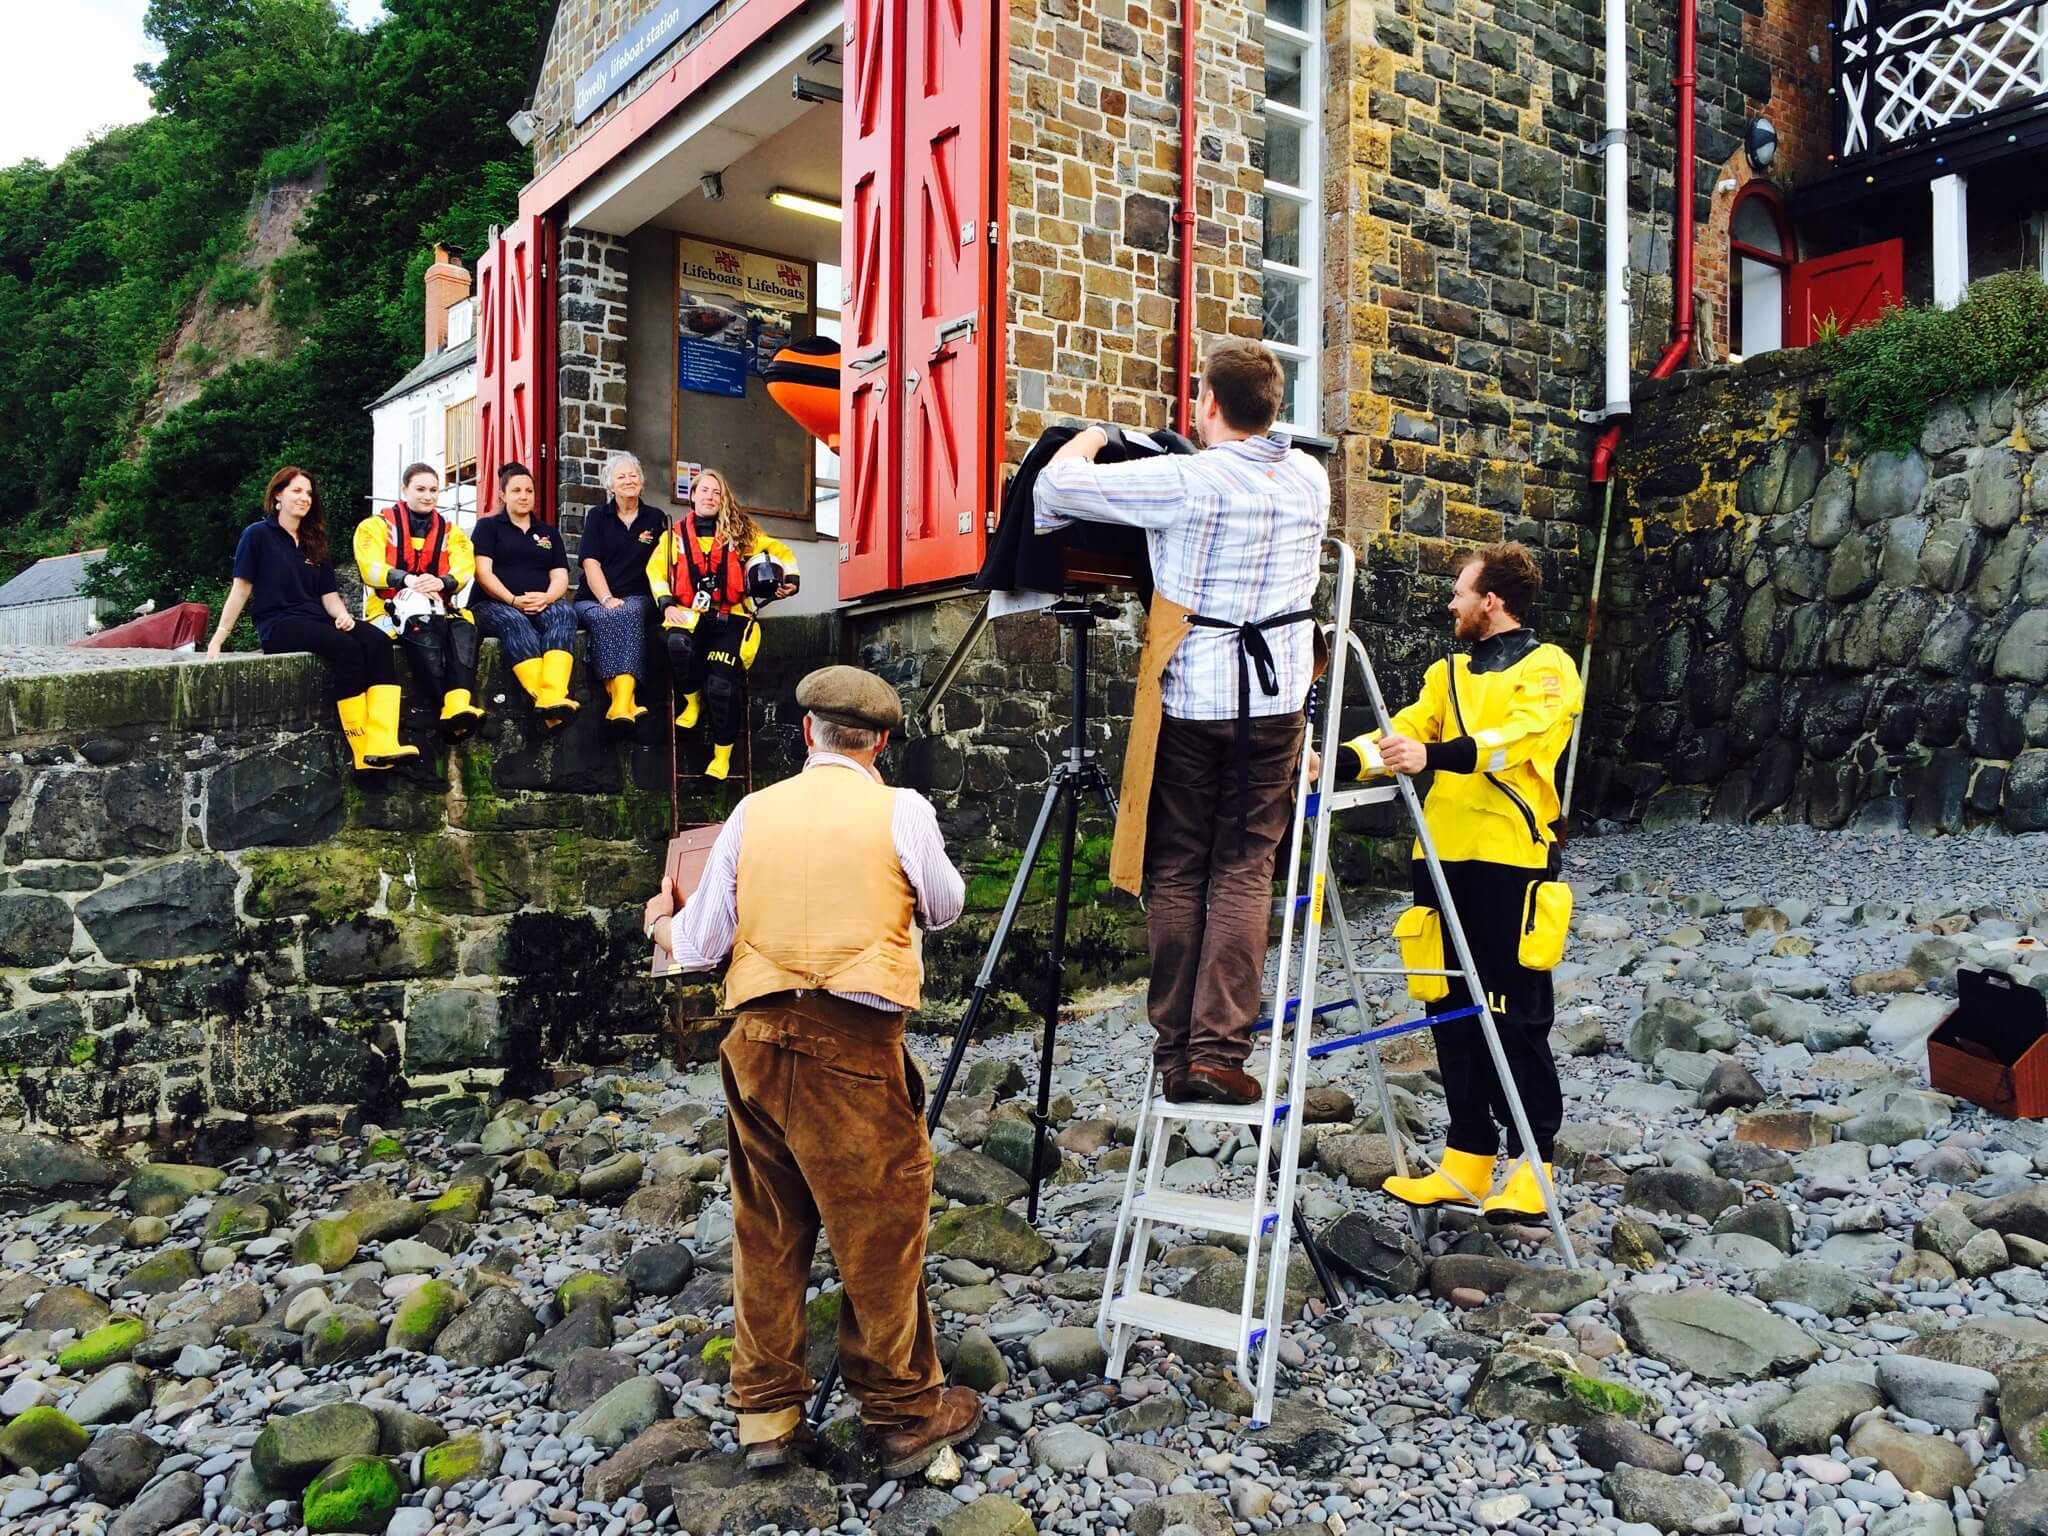 Life Boat Station Project Jack Lowe set up picture the south west collective of photography